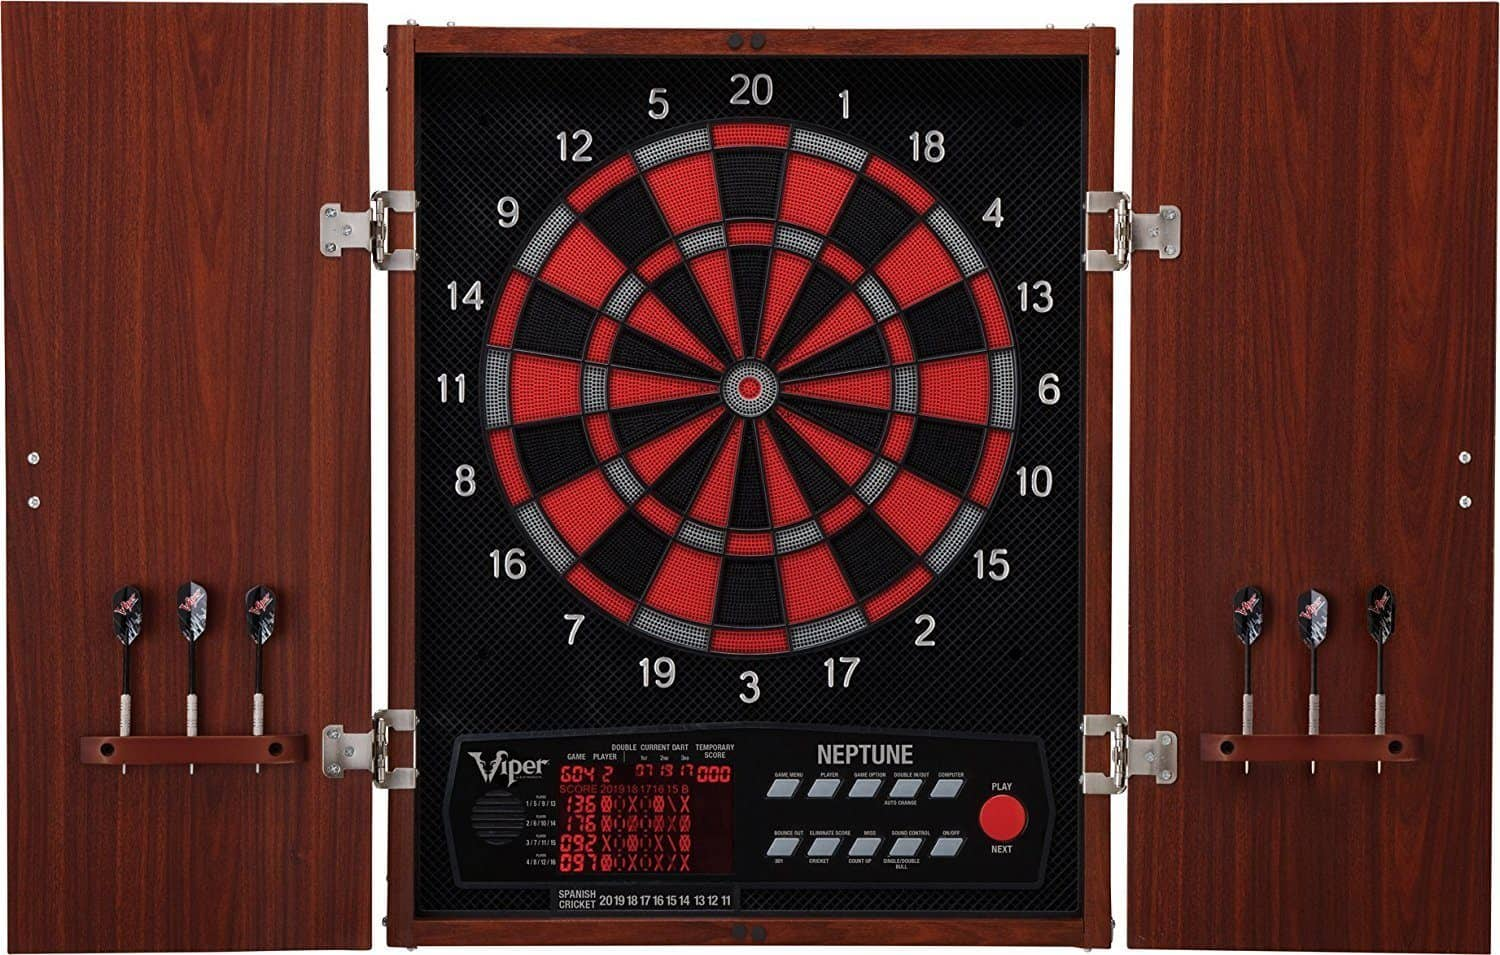 Viper Neptune Electronic Soft Tip Dartboard with Cabinet